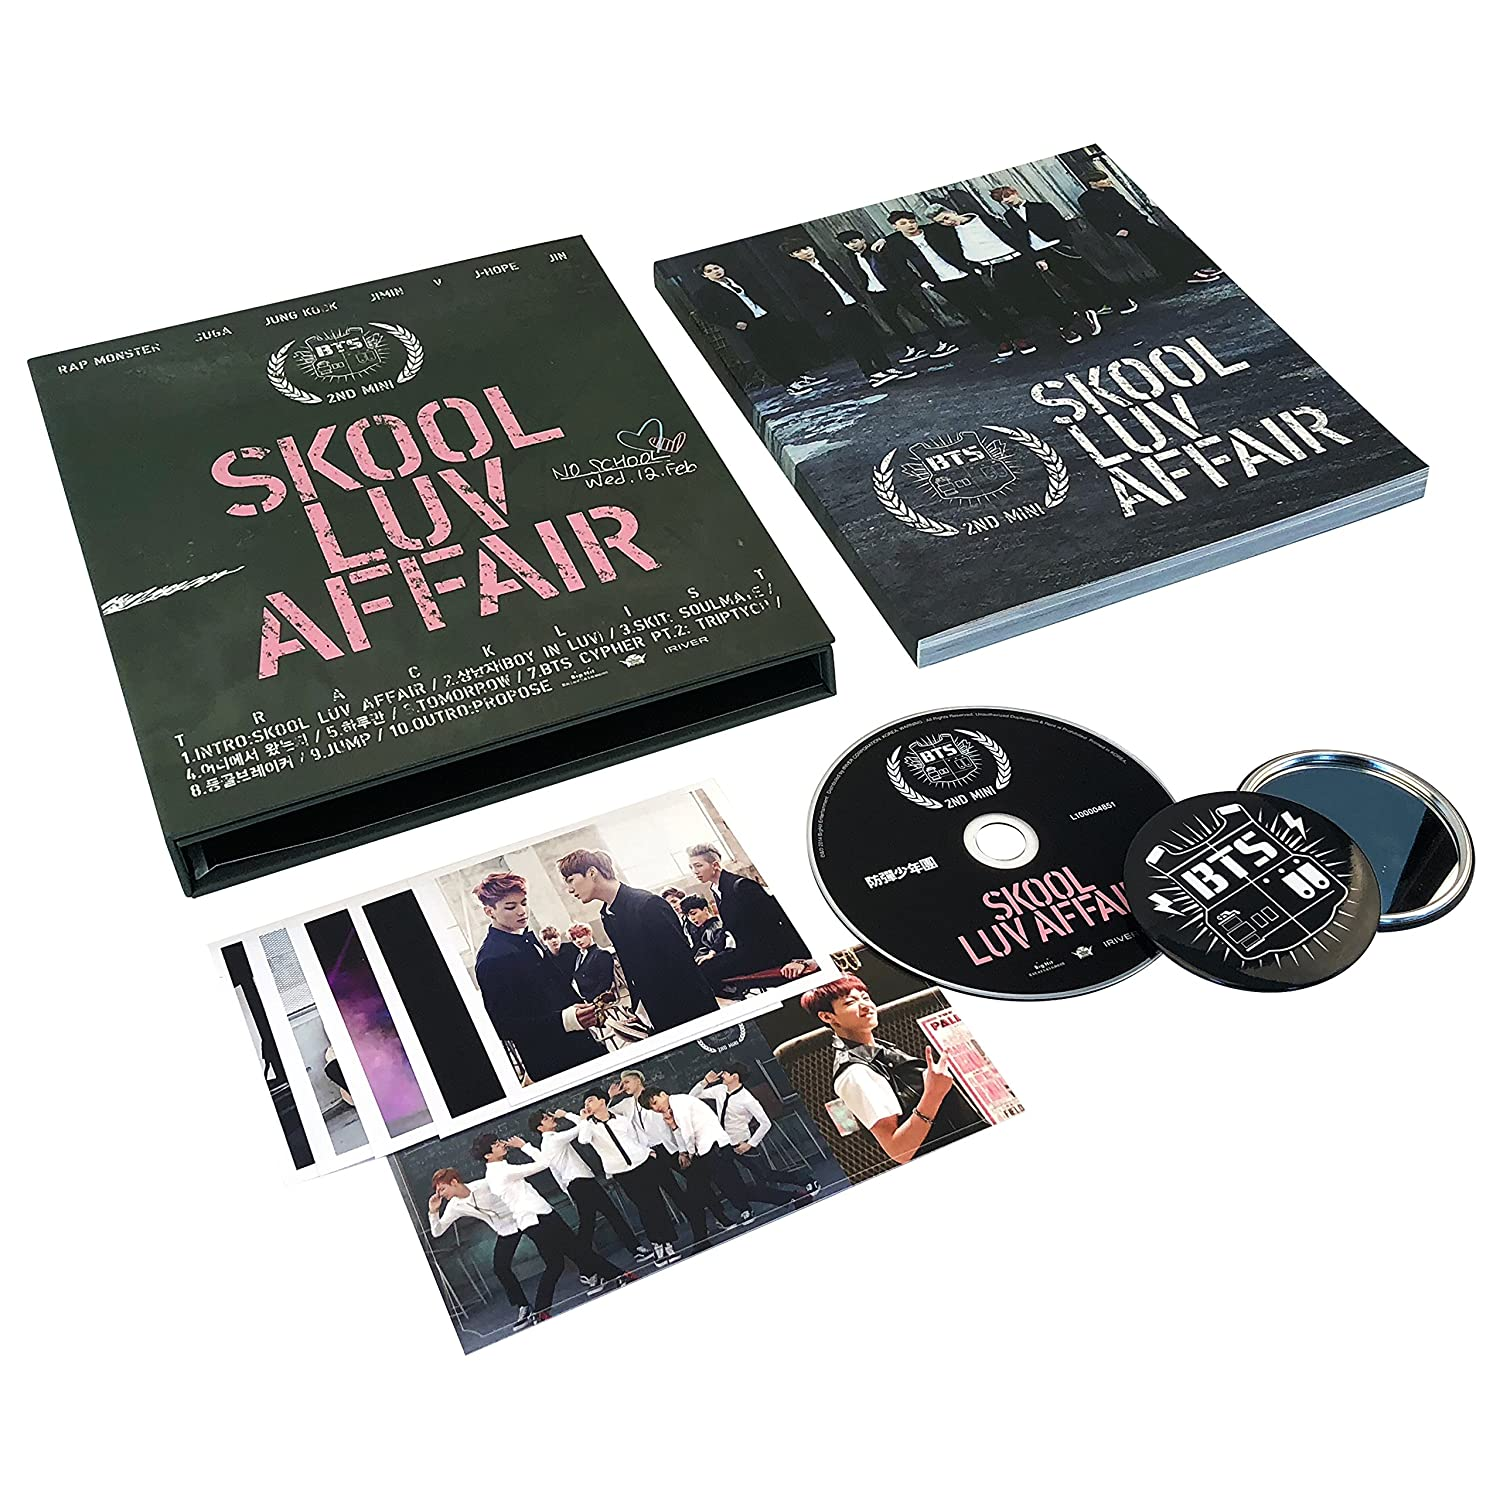 BTS 2nd Mini Album - [ Skool Luv Affair ] CD + Photobook + Photocard ...